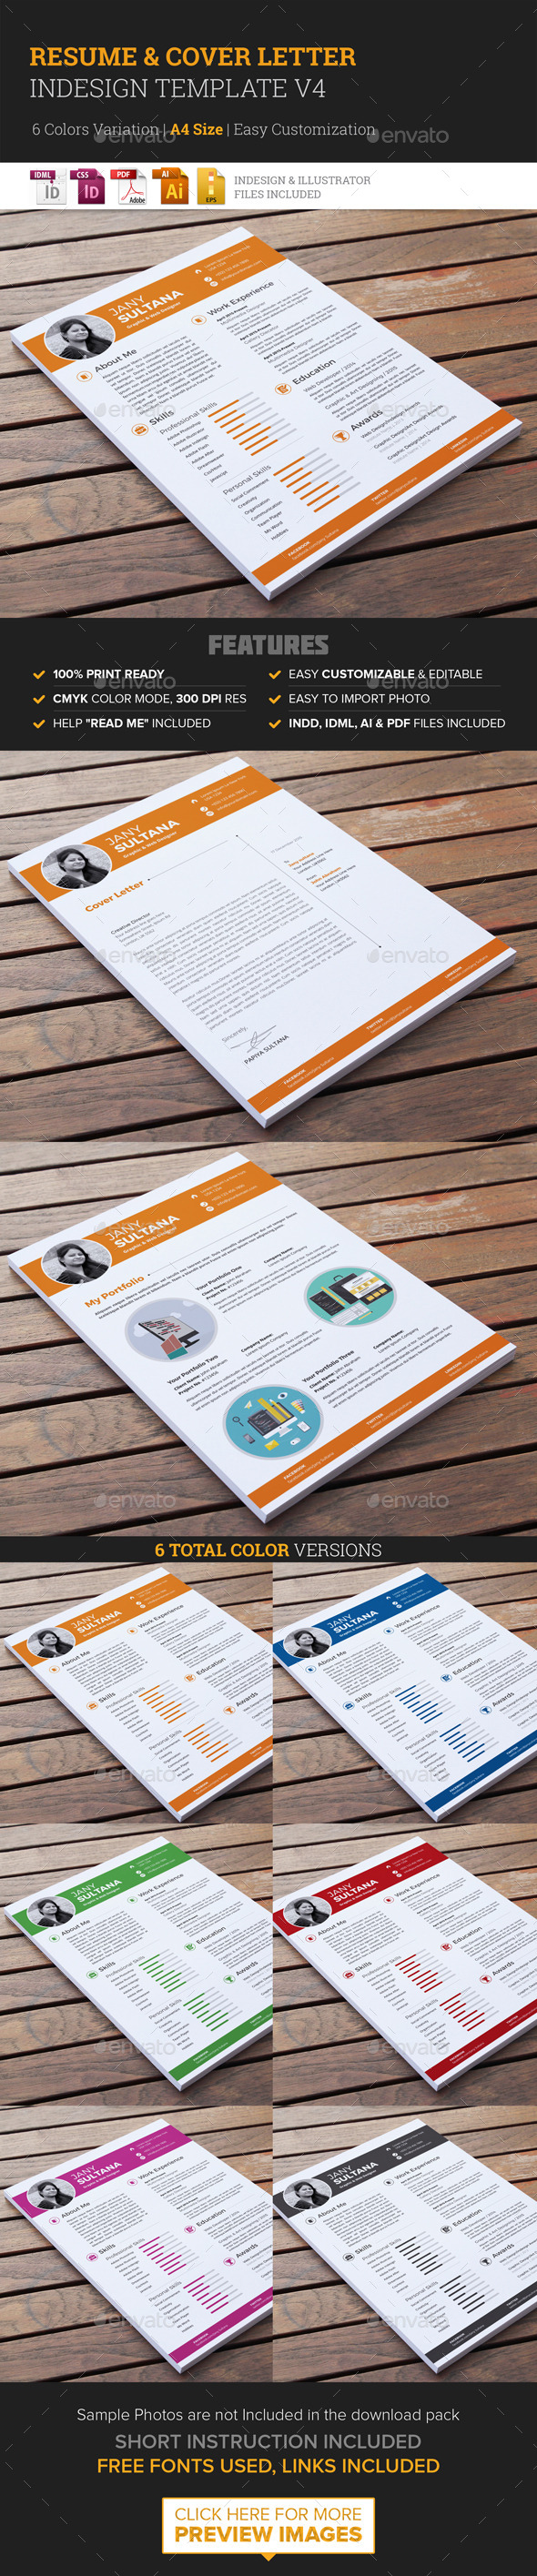 Resume & Cover Letter Template v4  - Resumes Stationery